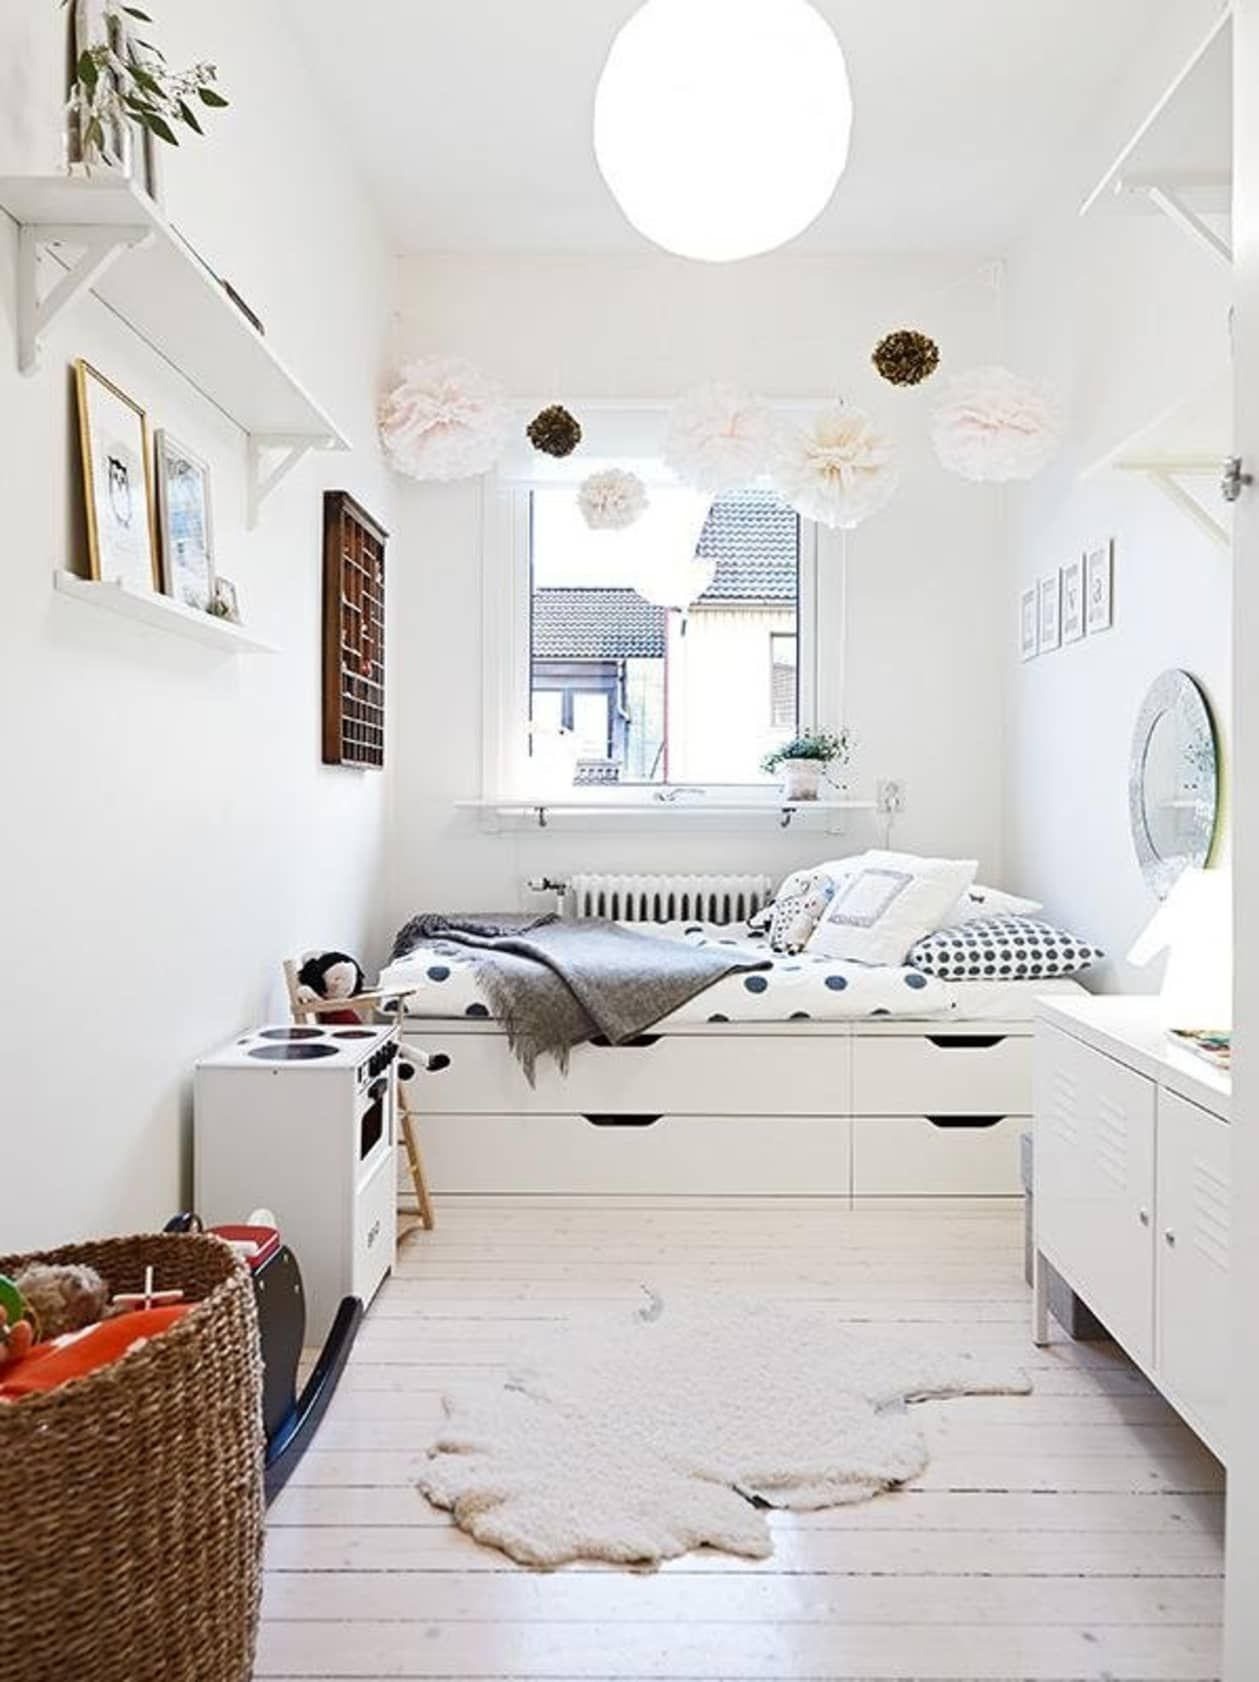 6 Ways To Hack A Platform Storage Bed From Ikea Products Small Space Bedroom Cozy Small Bedrooms Small Room Bedroom